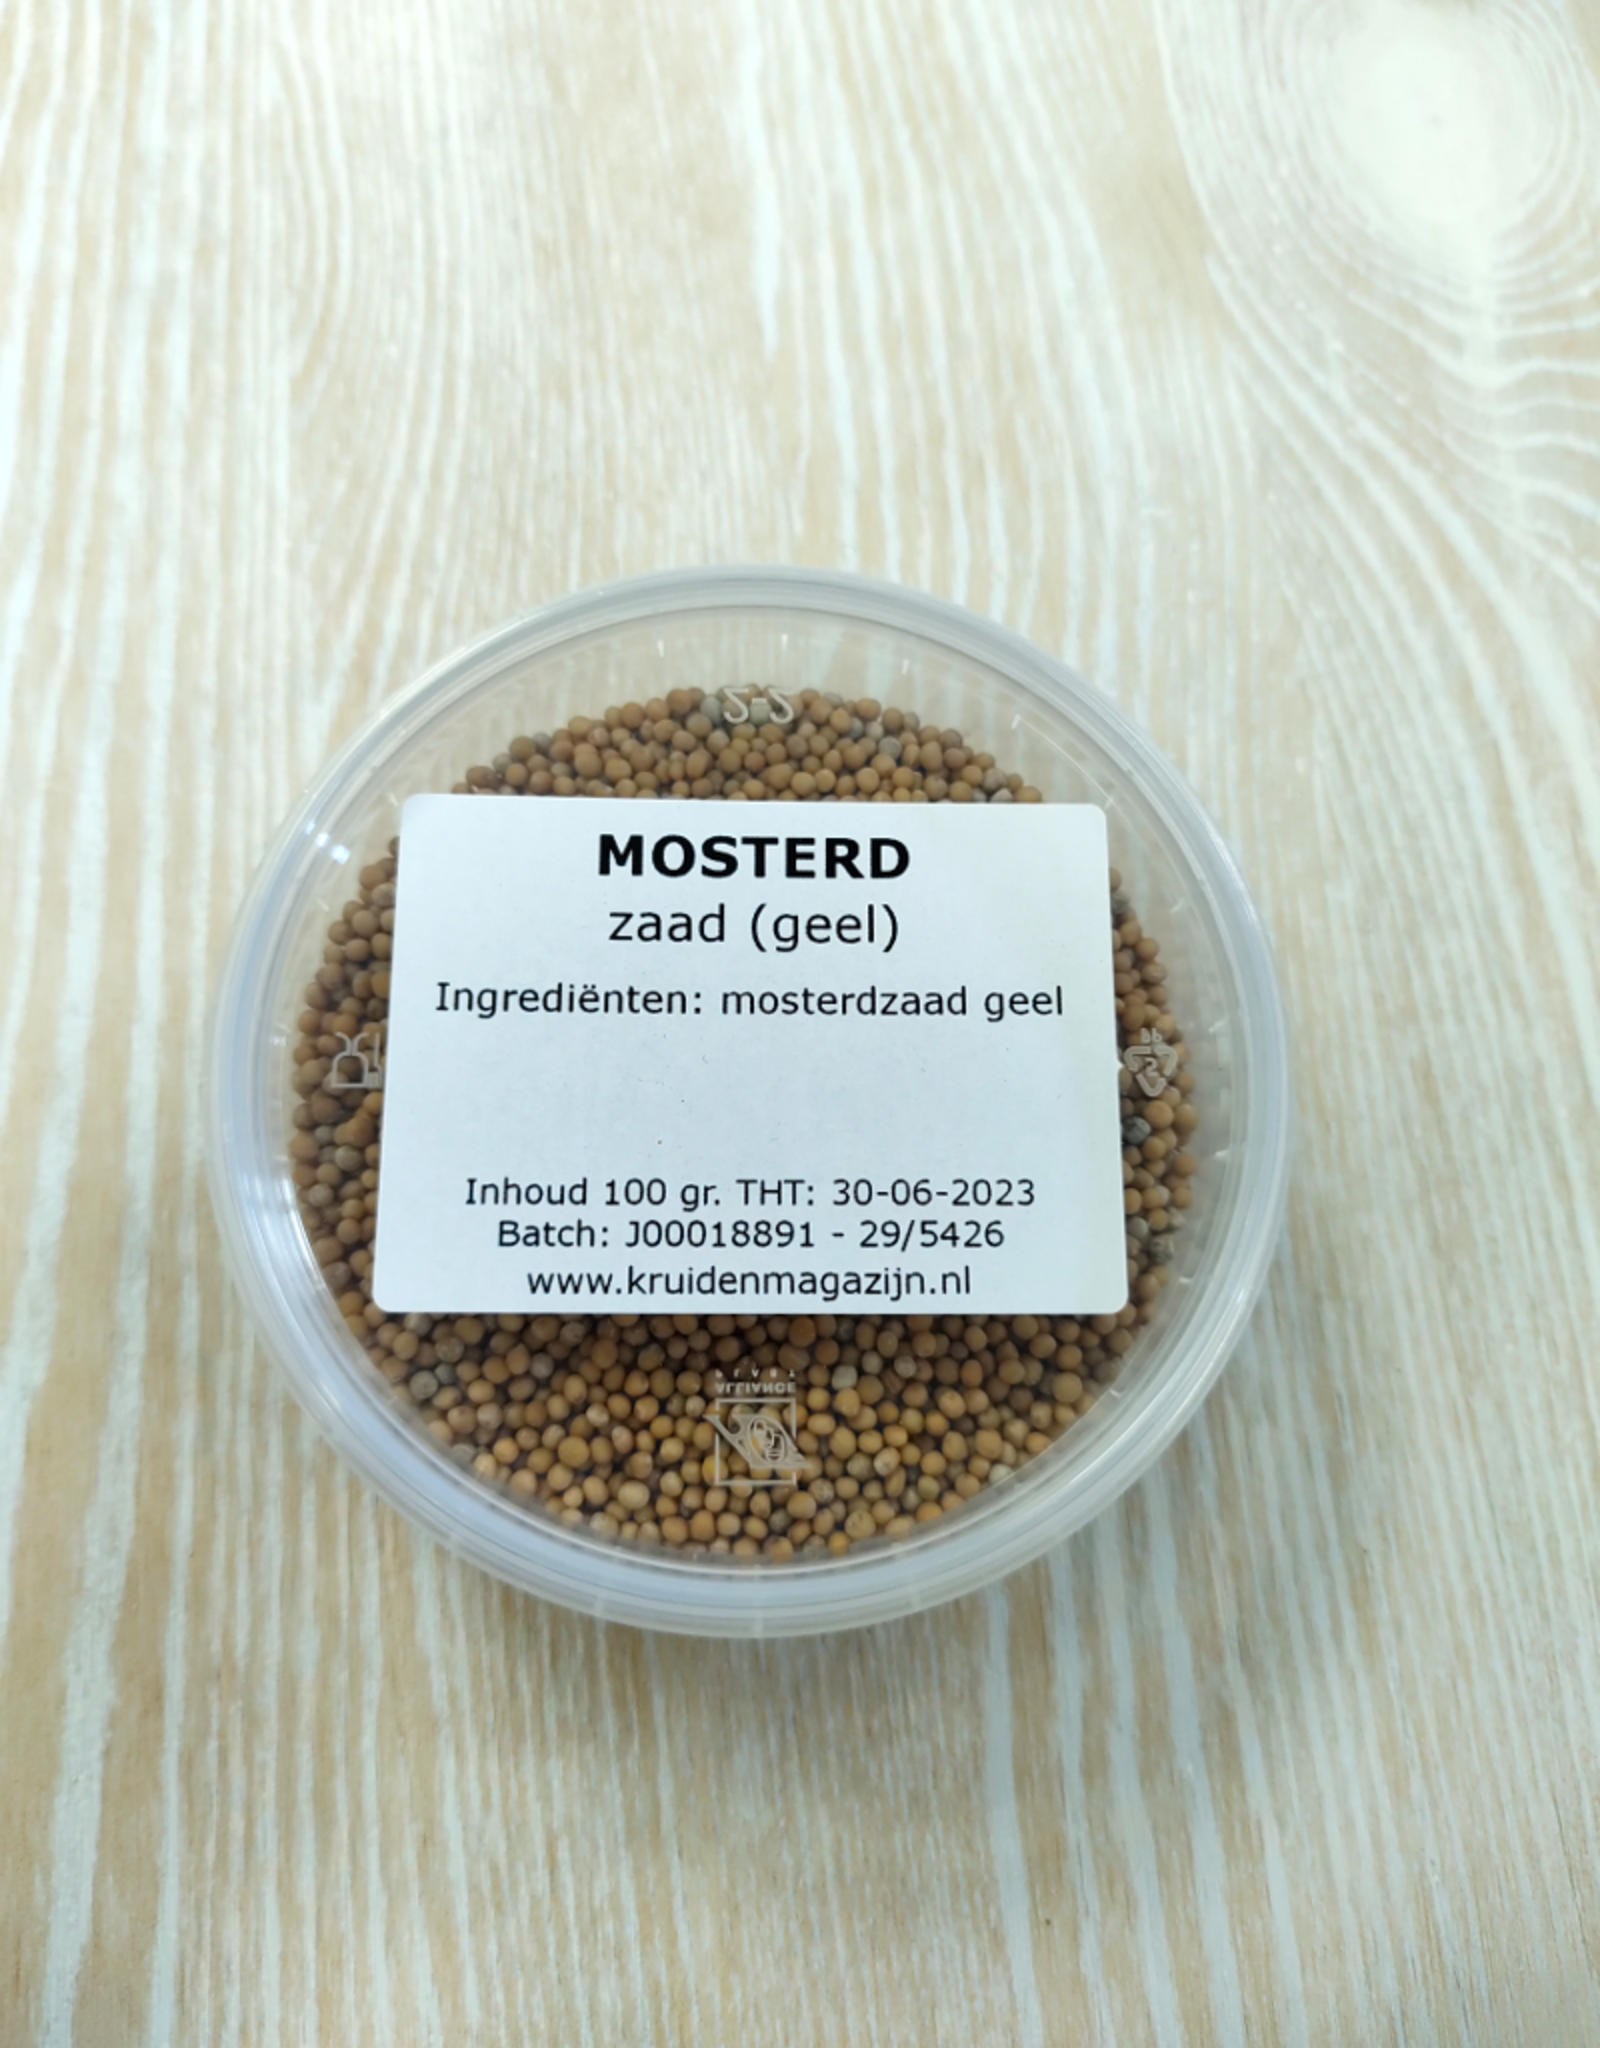 KM mosterdzaad (heel) in cup